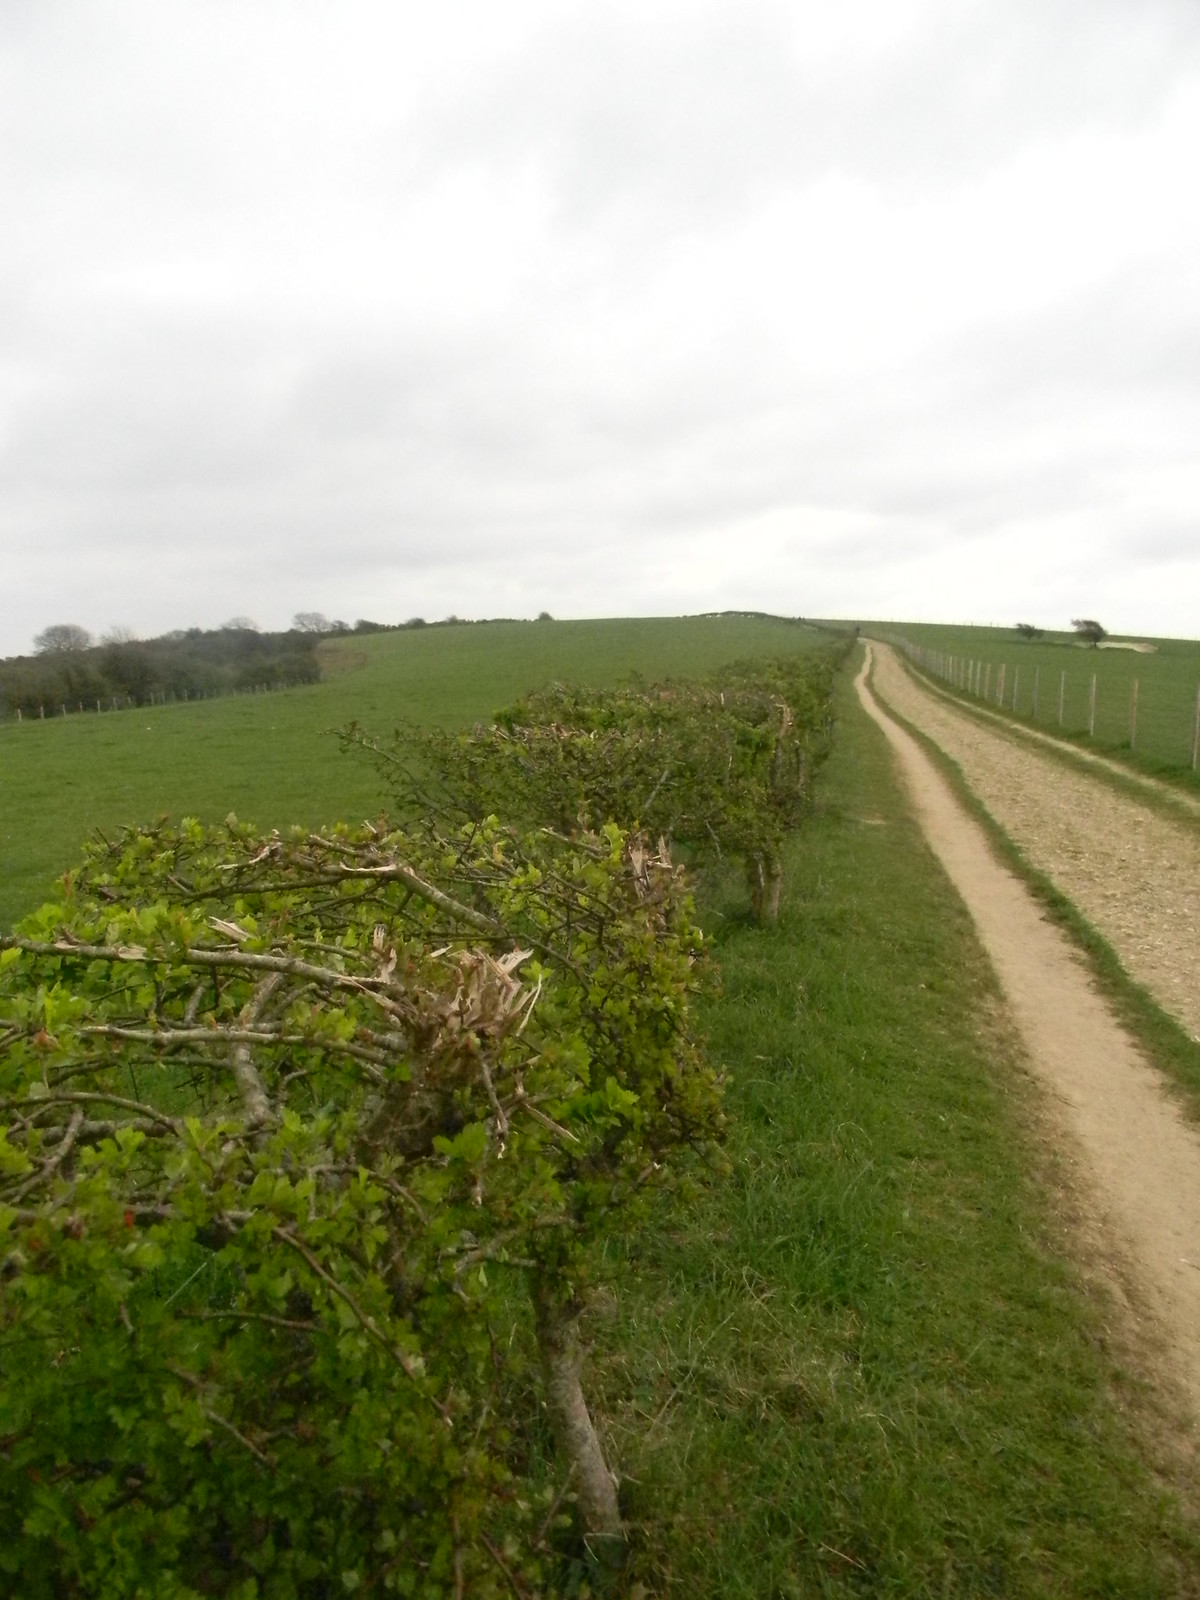 long track with hedge Just after Jack & Jill Hassocks to Lewes